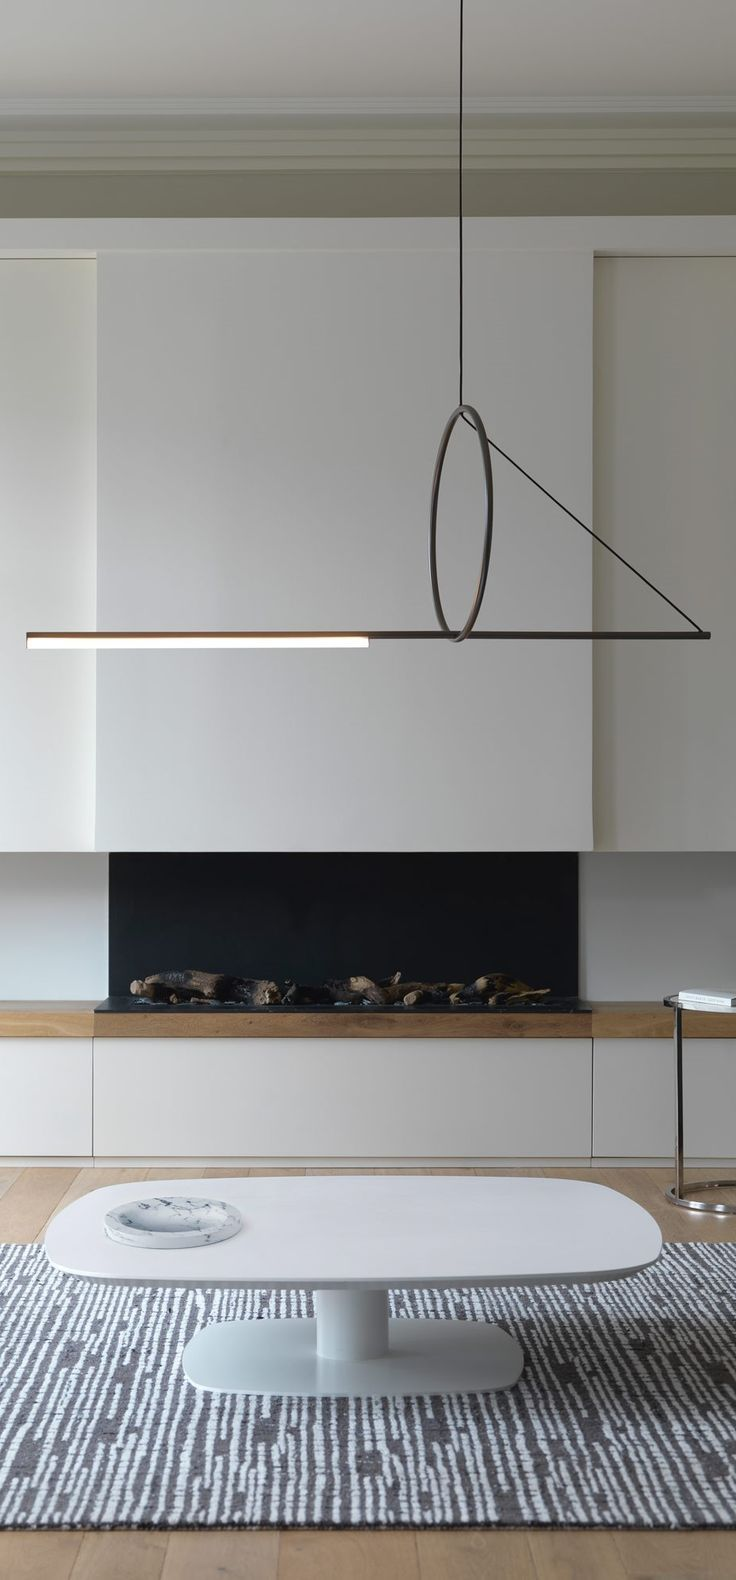 Modish Bathroom Lighting Ideas With Modern Concept: Geometric Suspension Pendant Gives Minimalist Vibe To